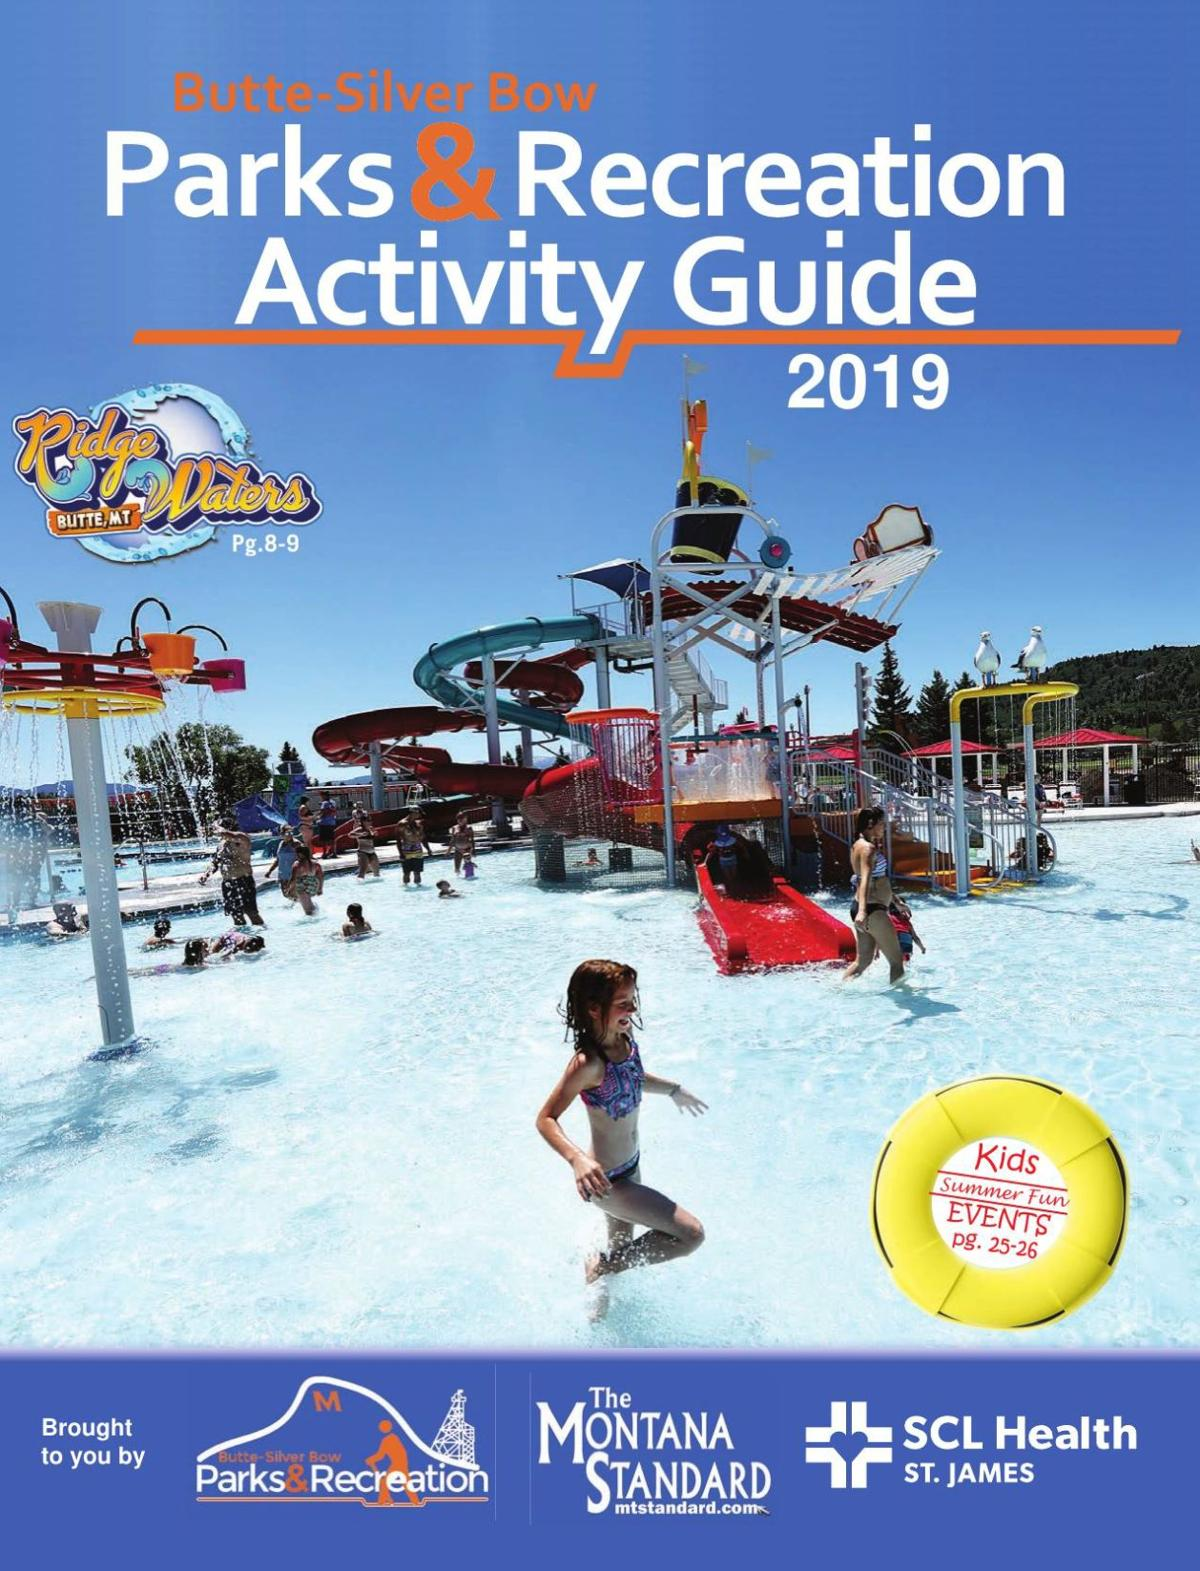 Parks & Recreation Activity Guide 2019